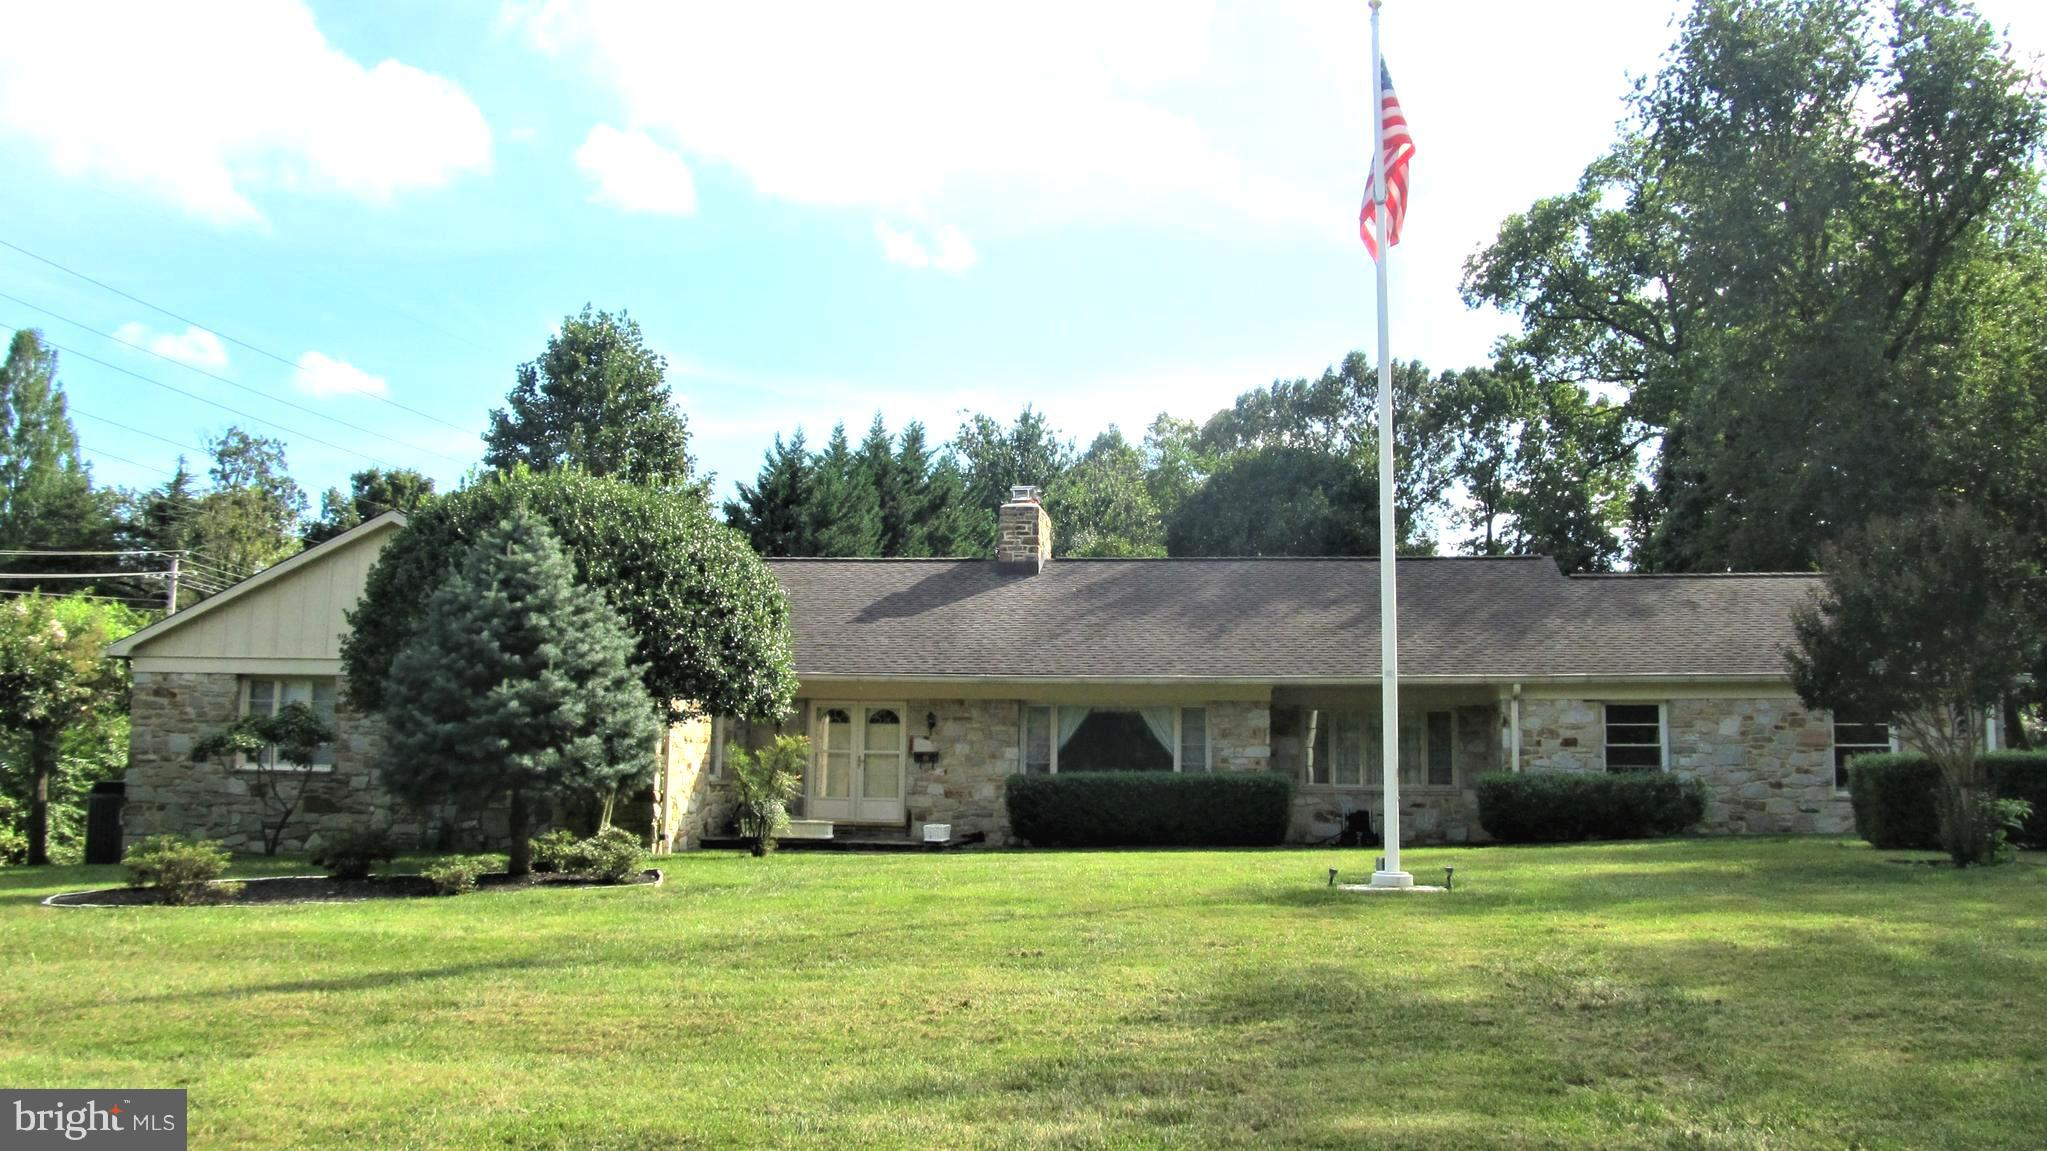 101 MAPLE ROAD, LINTHICUM HEIGHTS, MD 21090